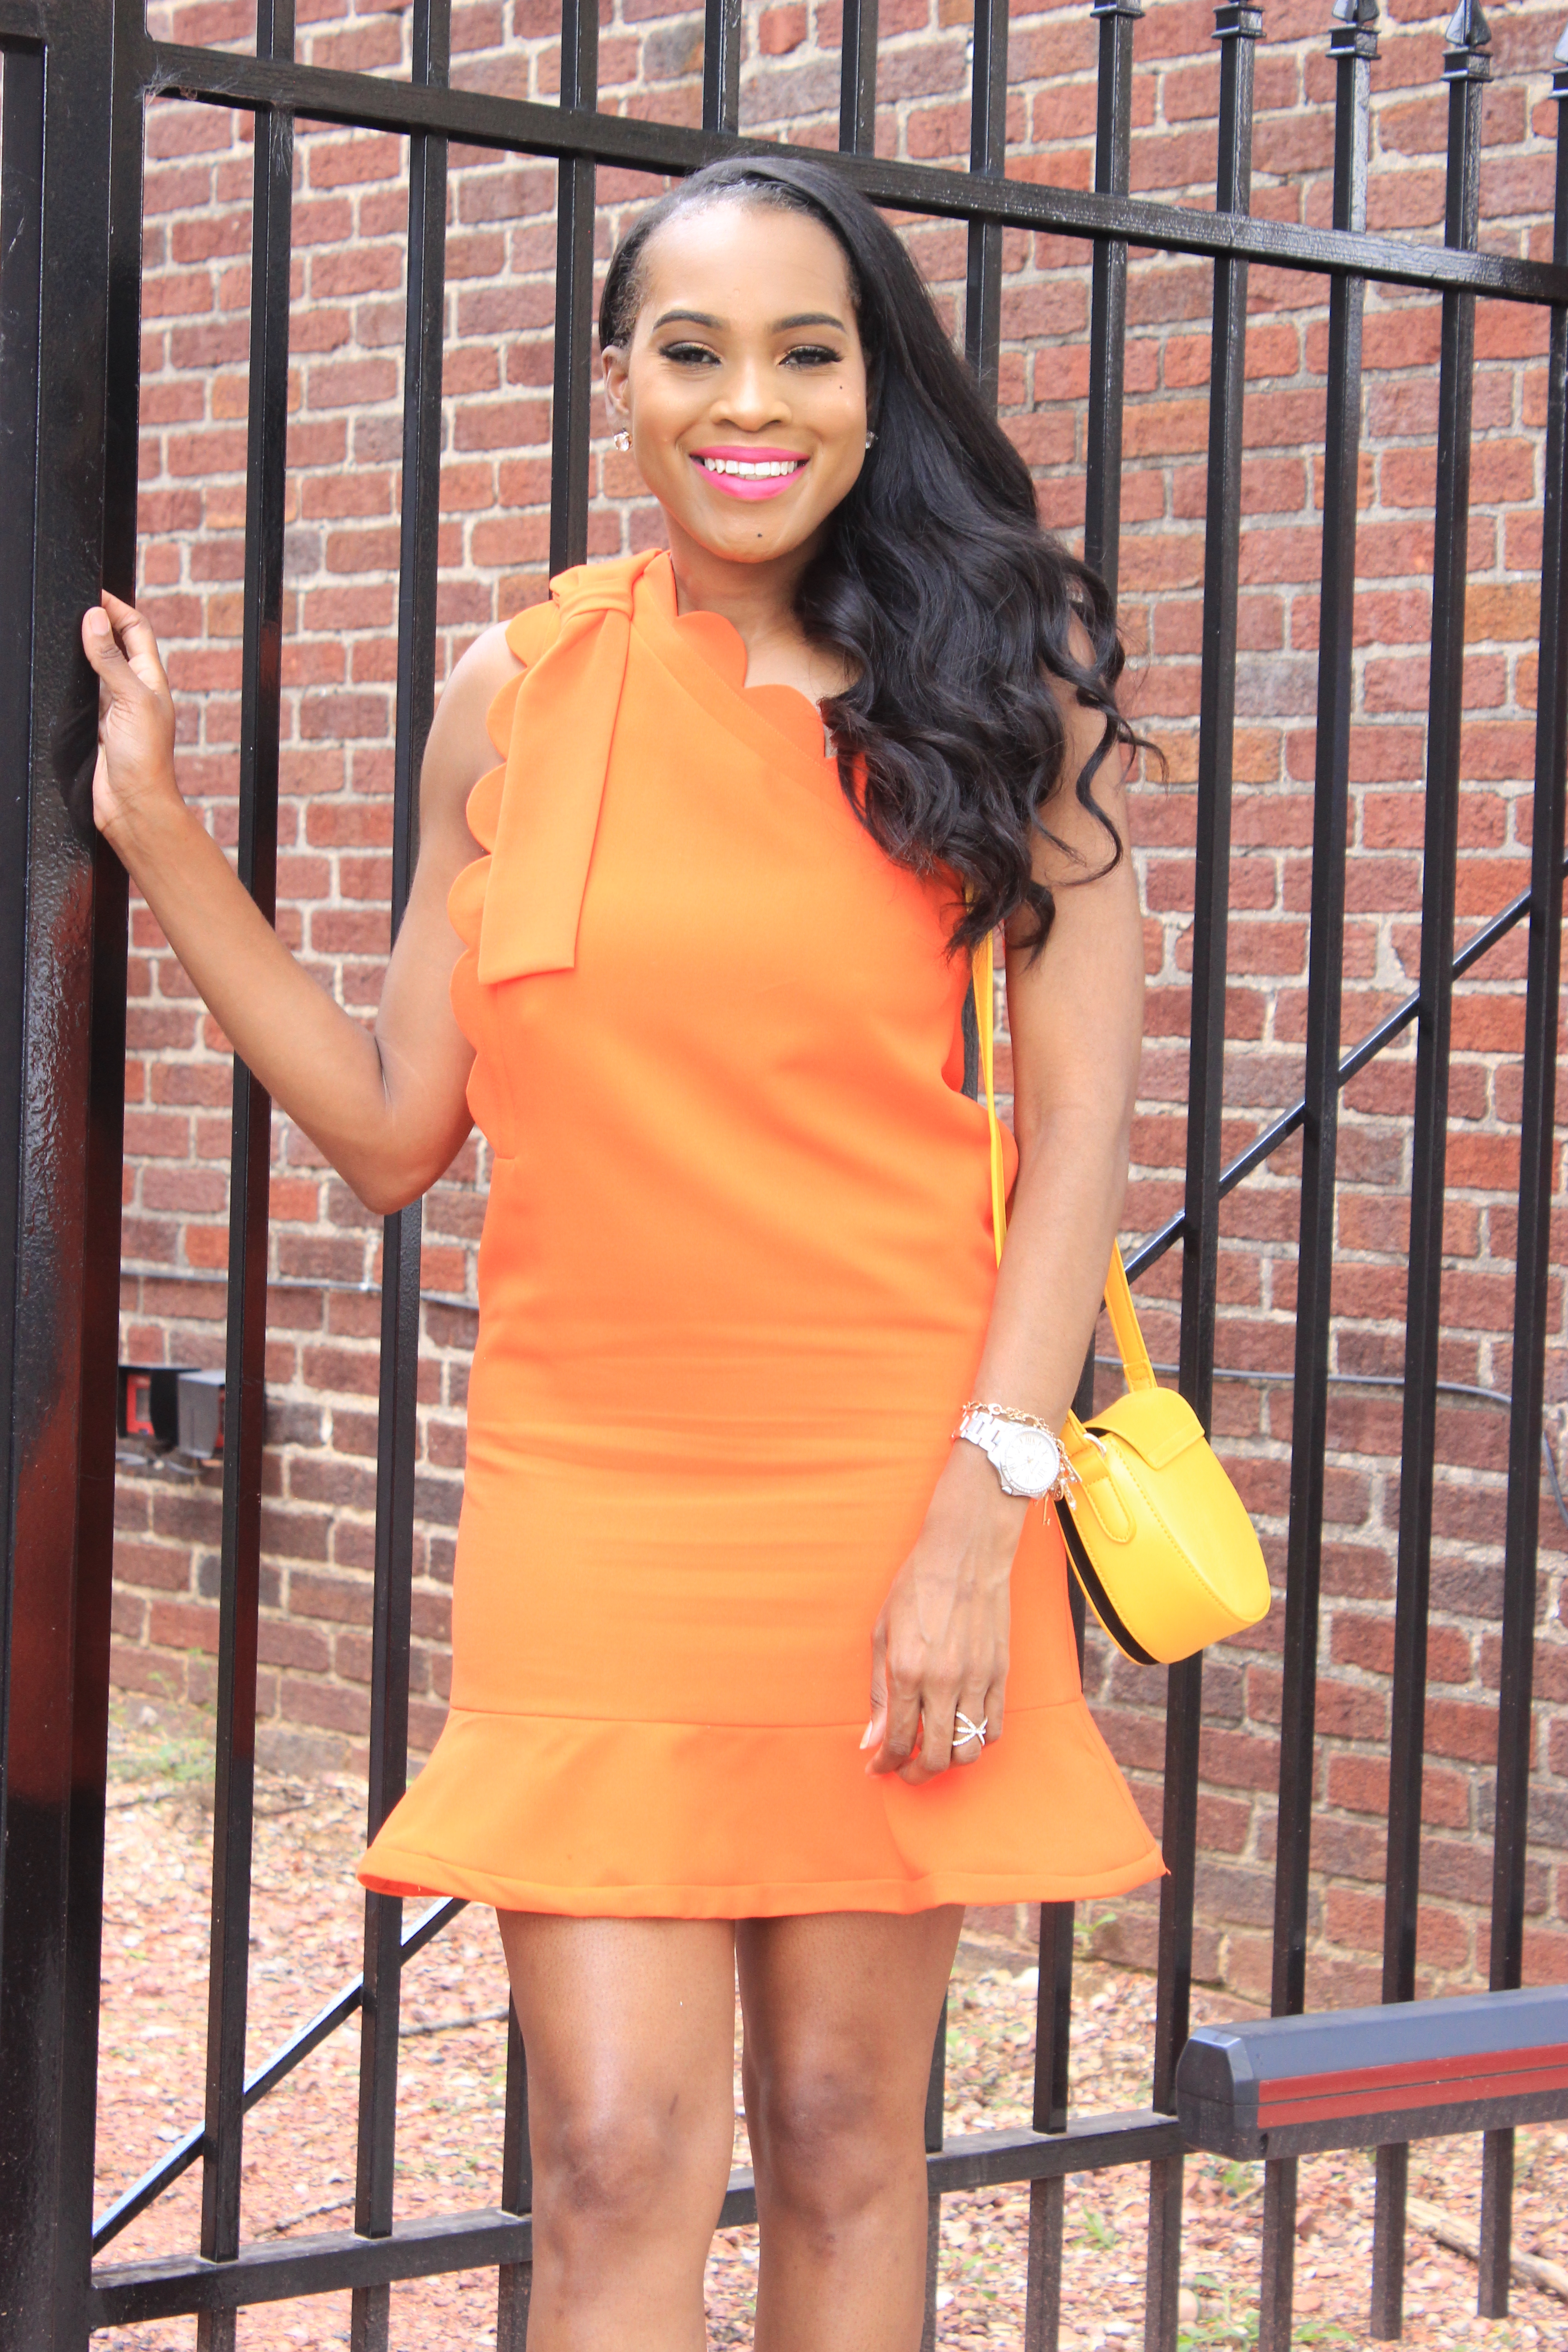 Style-Files-Orange-One Shoulder Dress-with-Bow and-Scallop-Trim-Victoria Beckham-for-Target-How-to-wear-victoria-beckham-for-target-Victoria-Beckham-for-Target-Review-Justfab-orange-kati-ankle-strap-sandals-oohlalablog-13